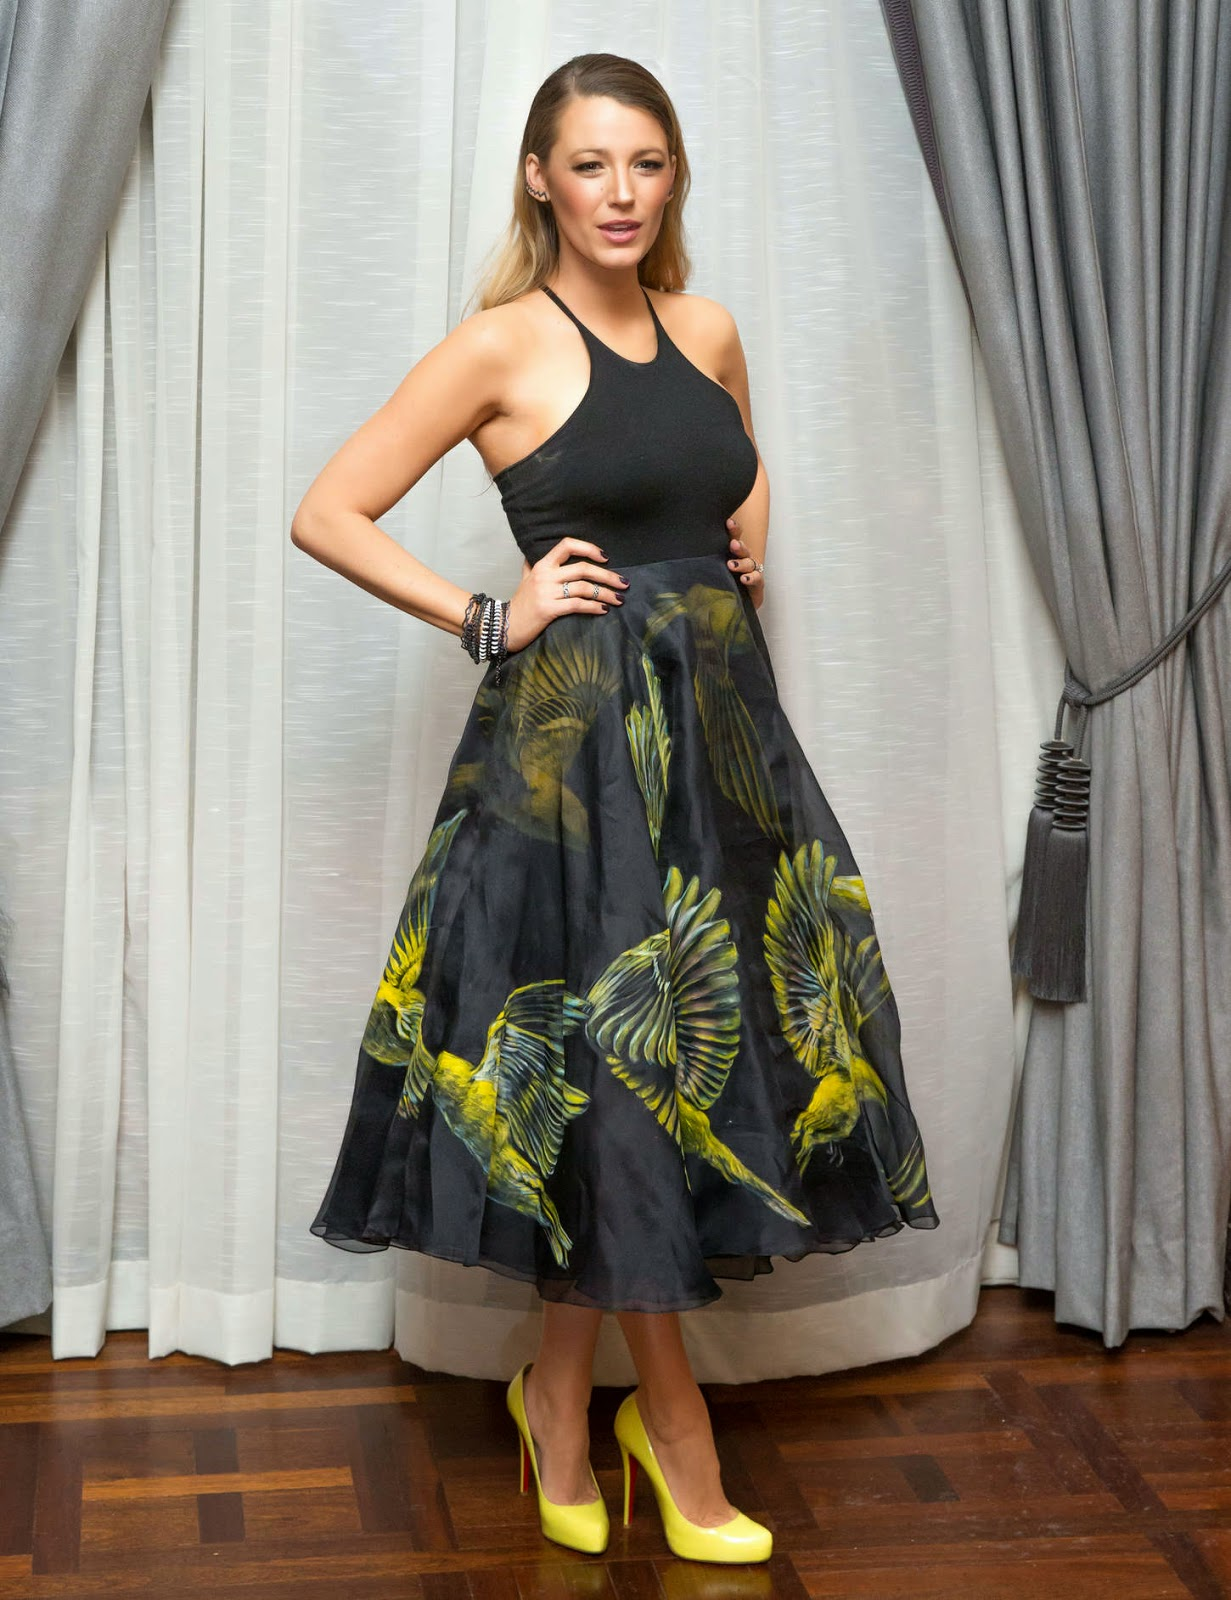 Blake Lively is gorgeous at the Marchesa NYFW Fall/Winter 2015 Show